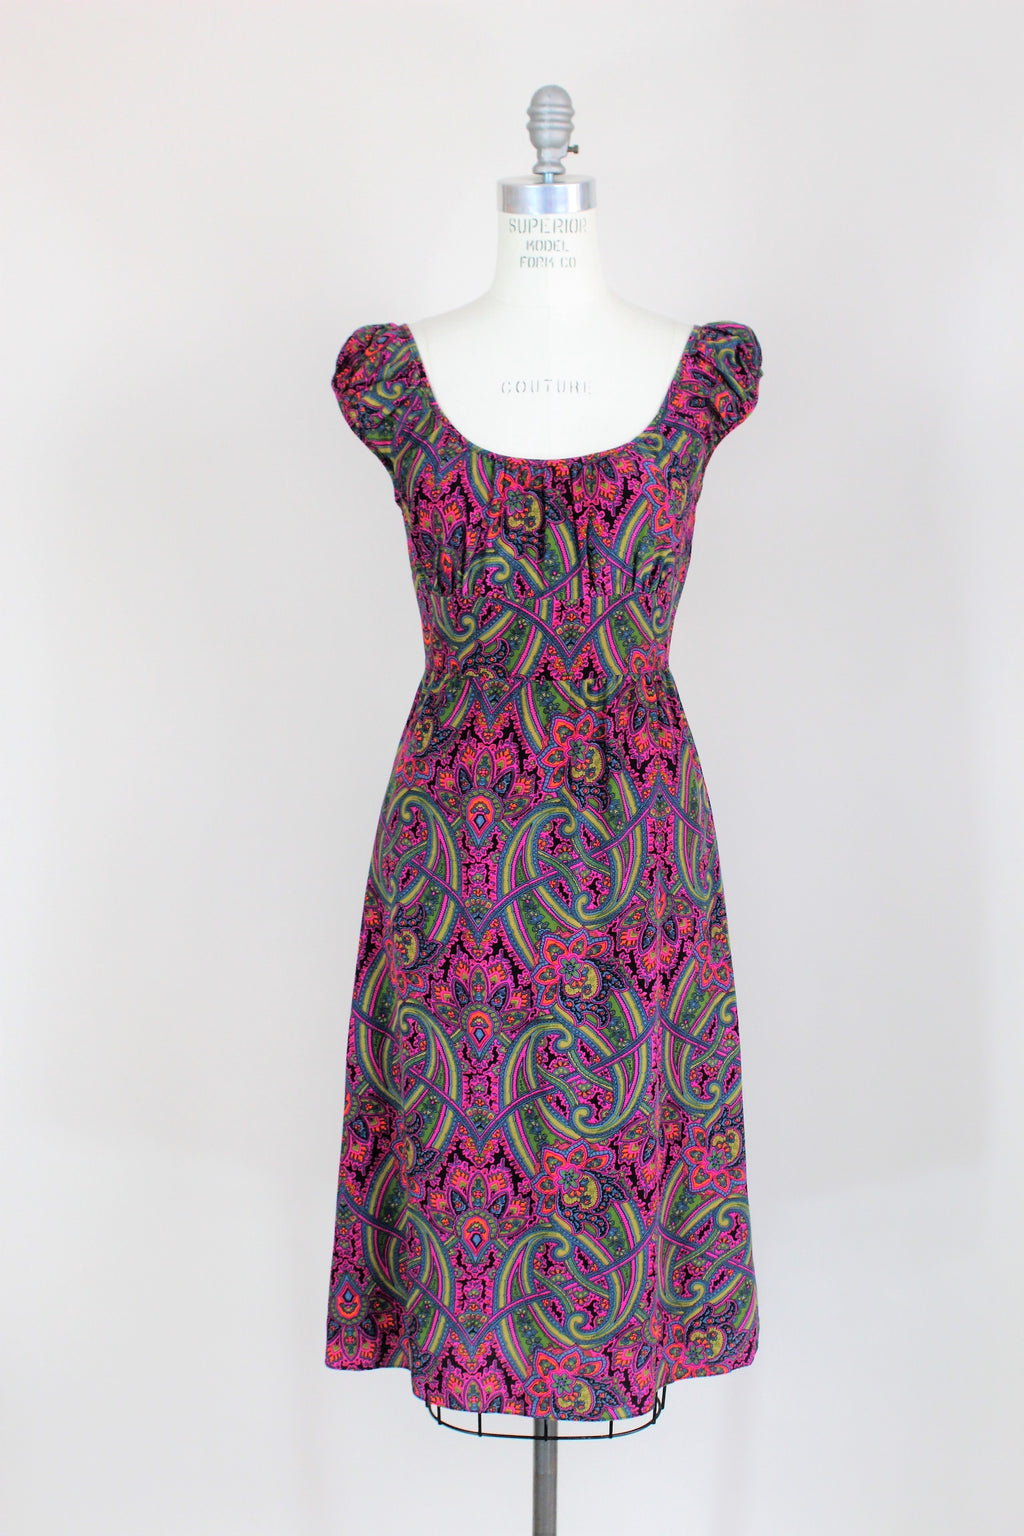 Betsey Johnson Dress In a Pretty Rainbow Print